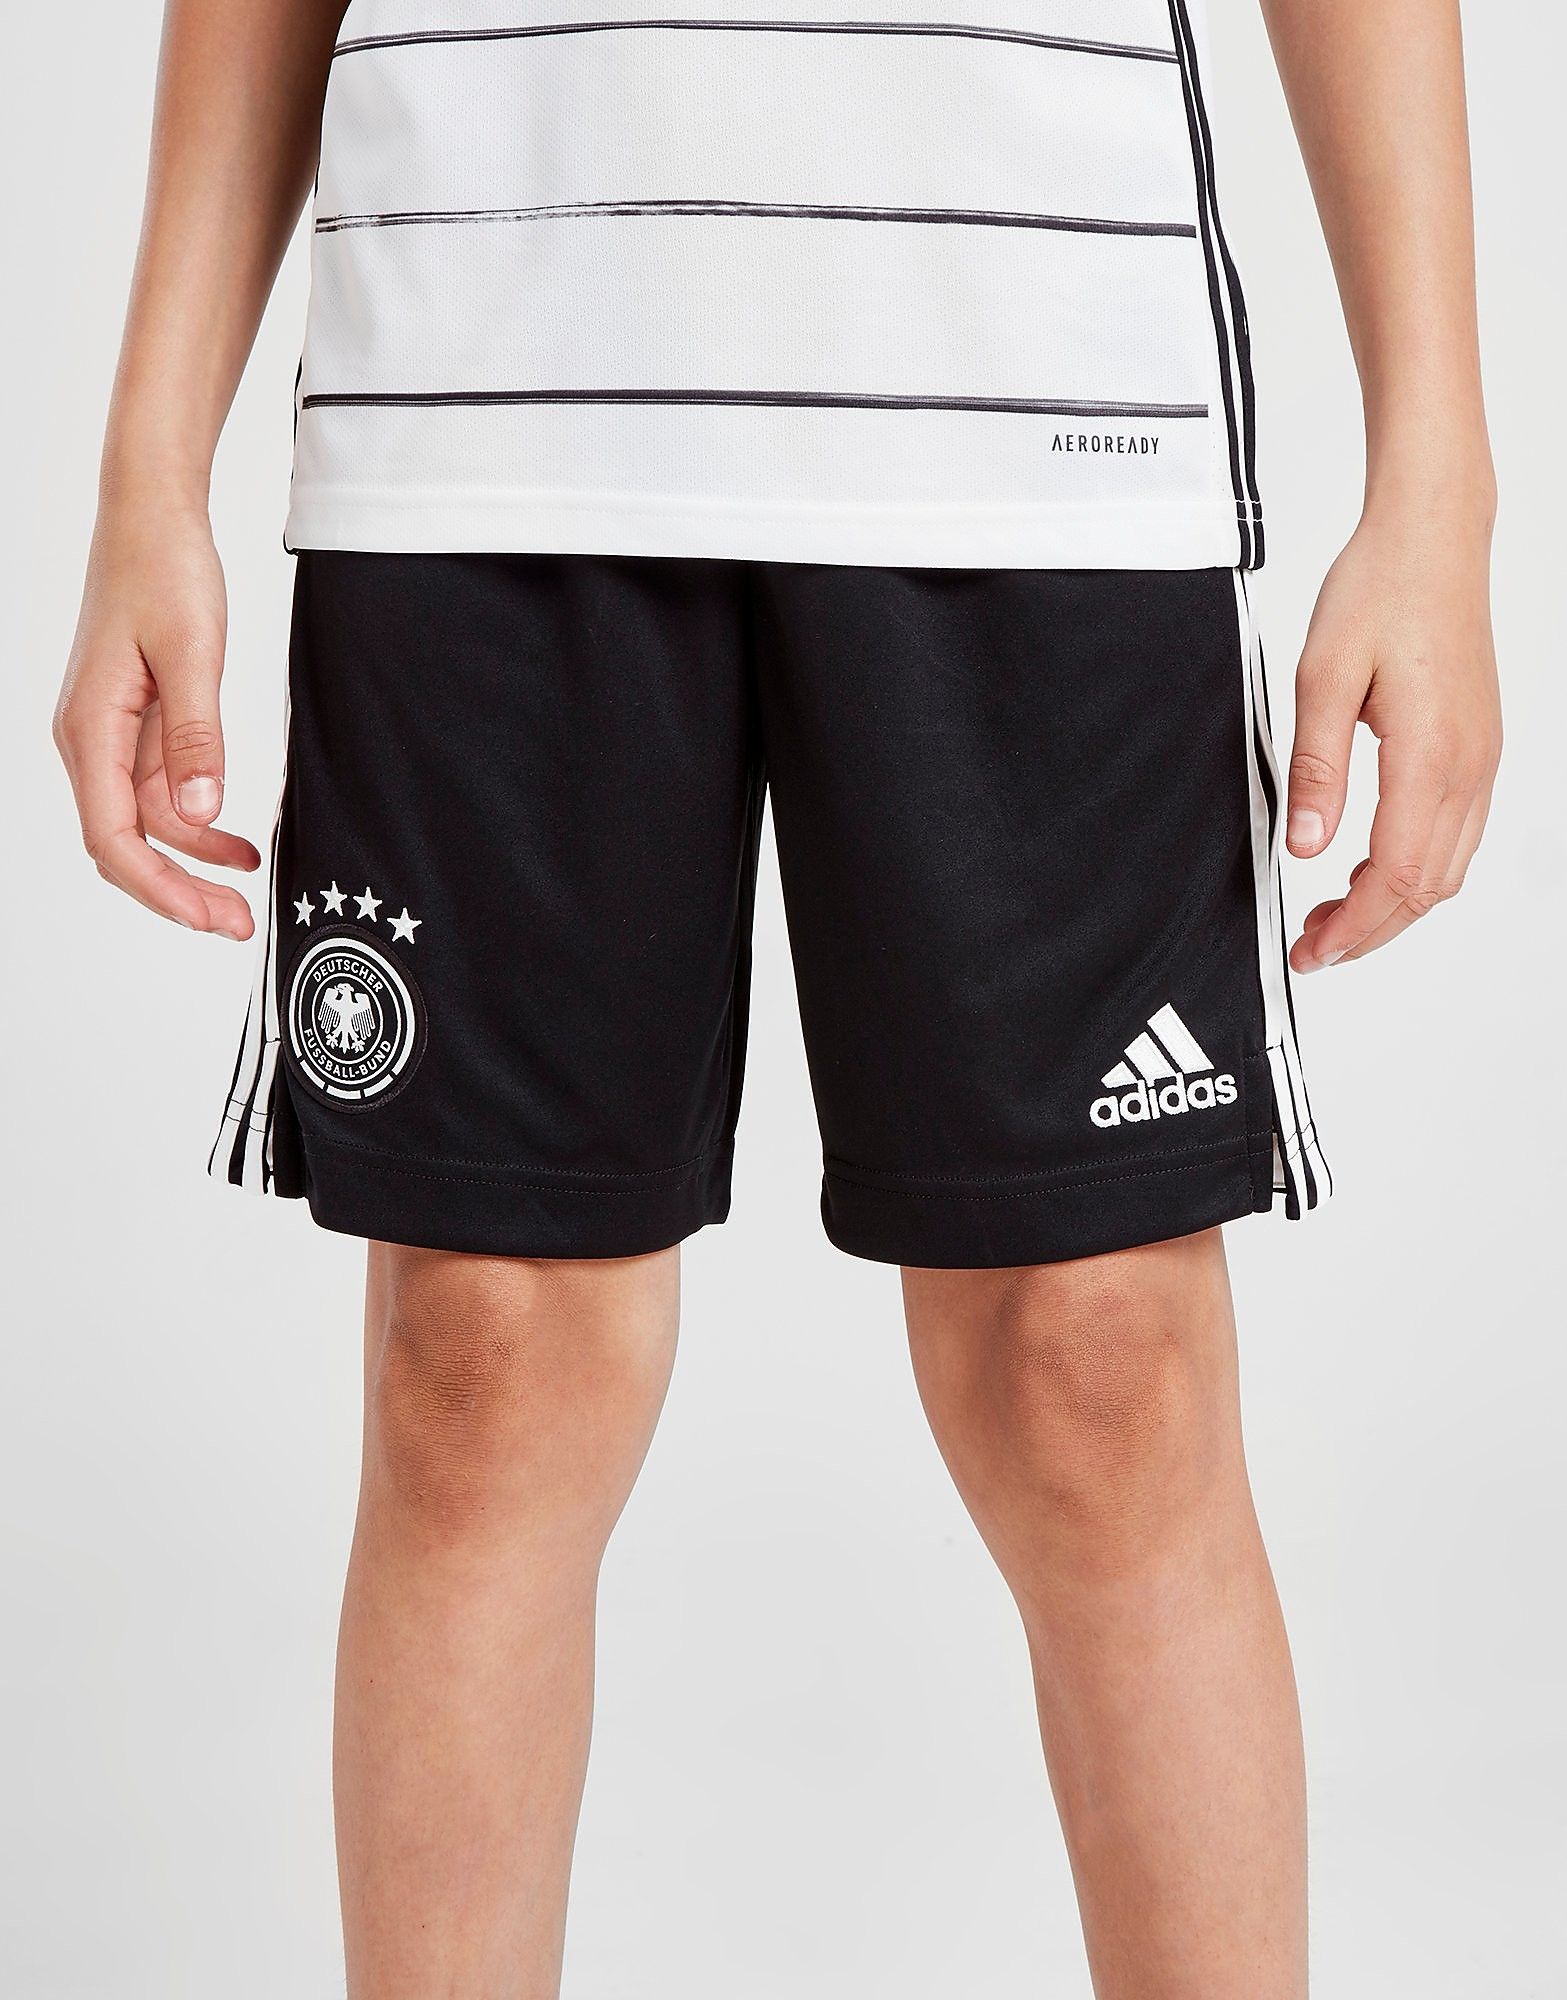 adidas Germany Home 2020 Shorts Junior Zwart Kind Zwart